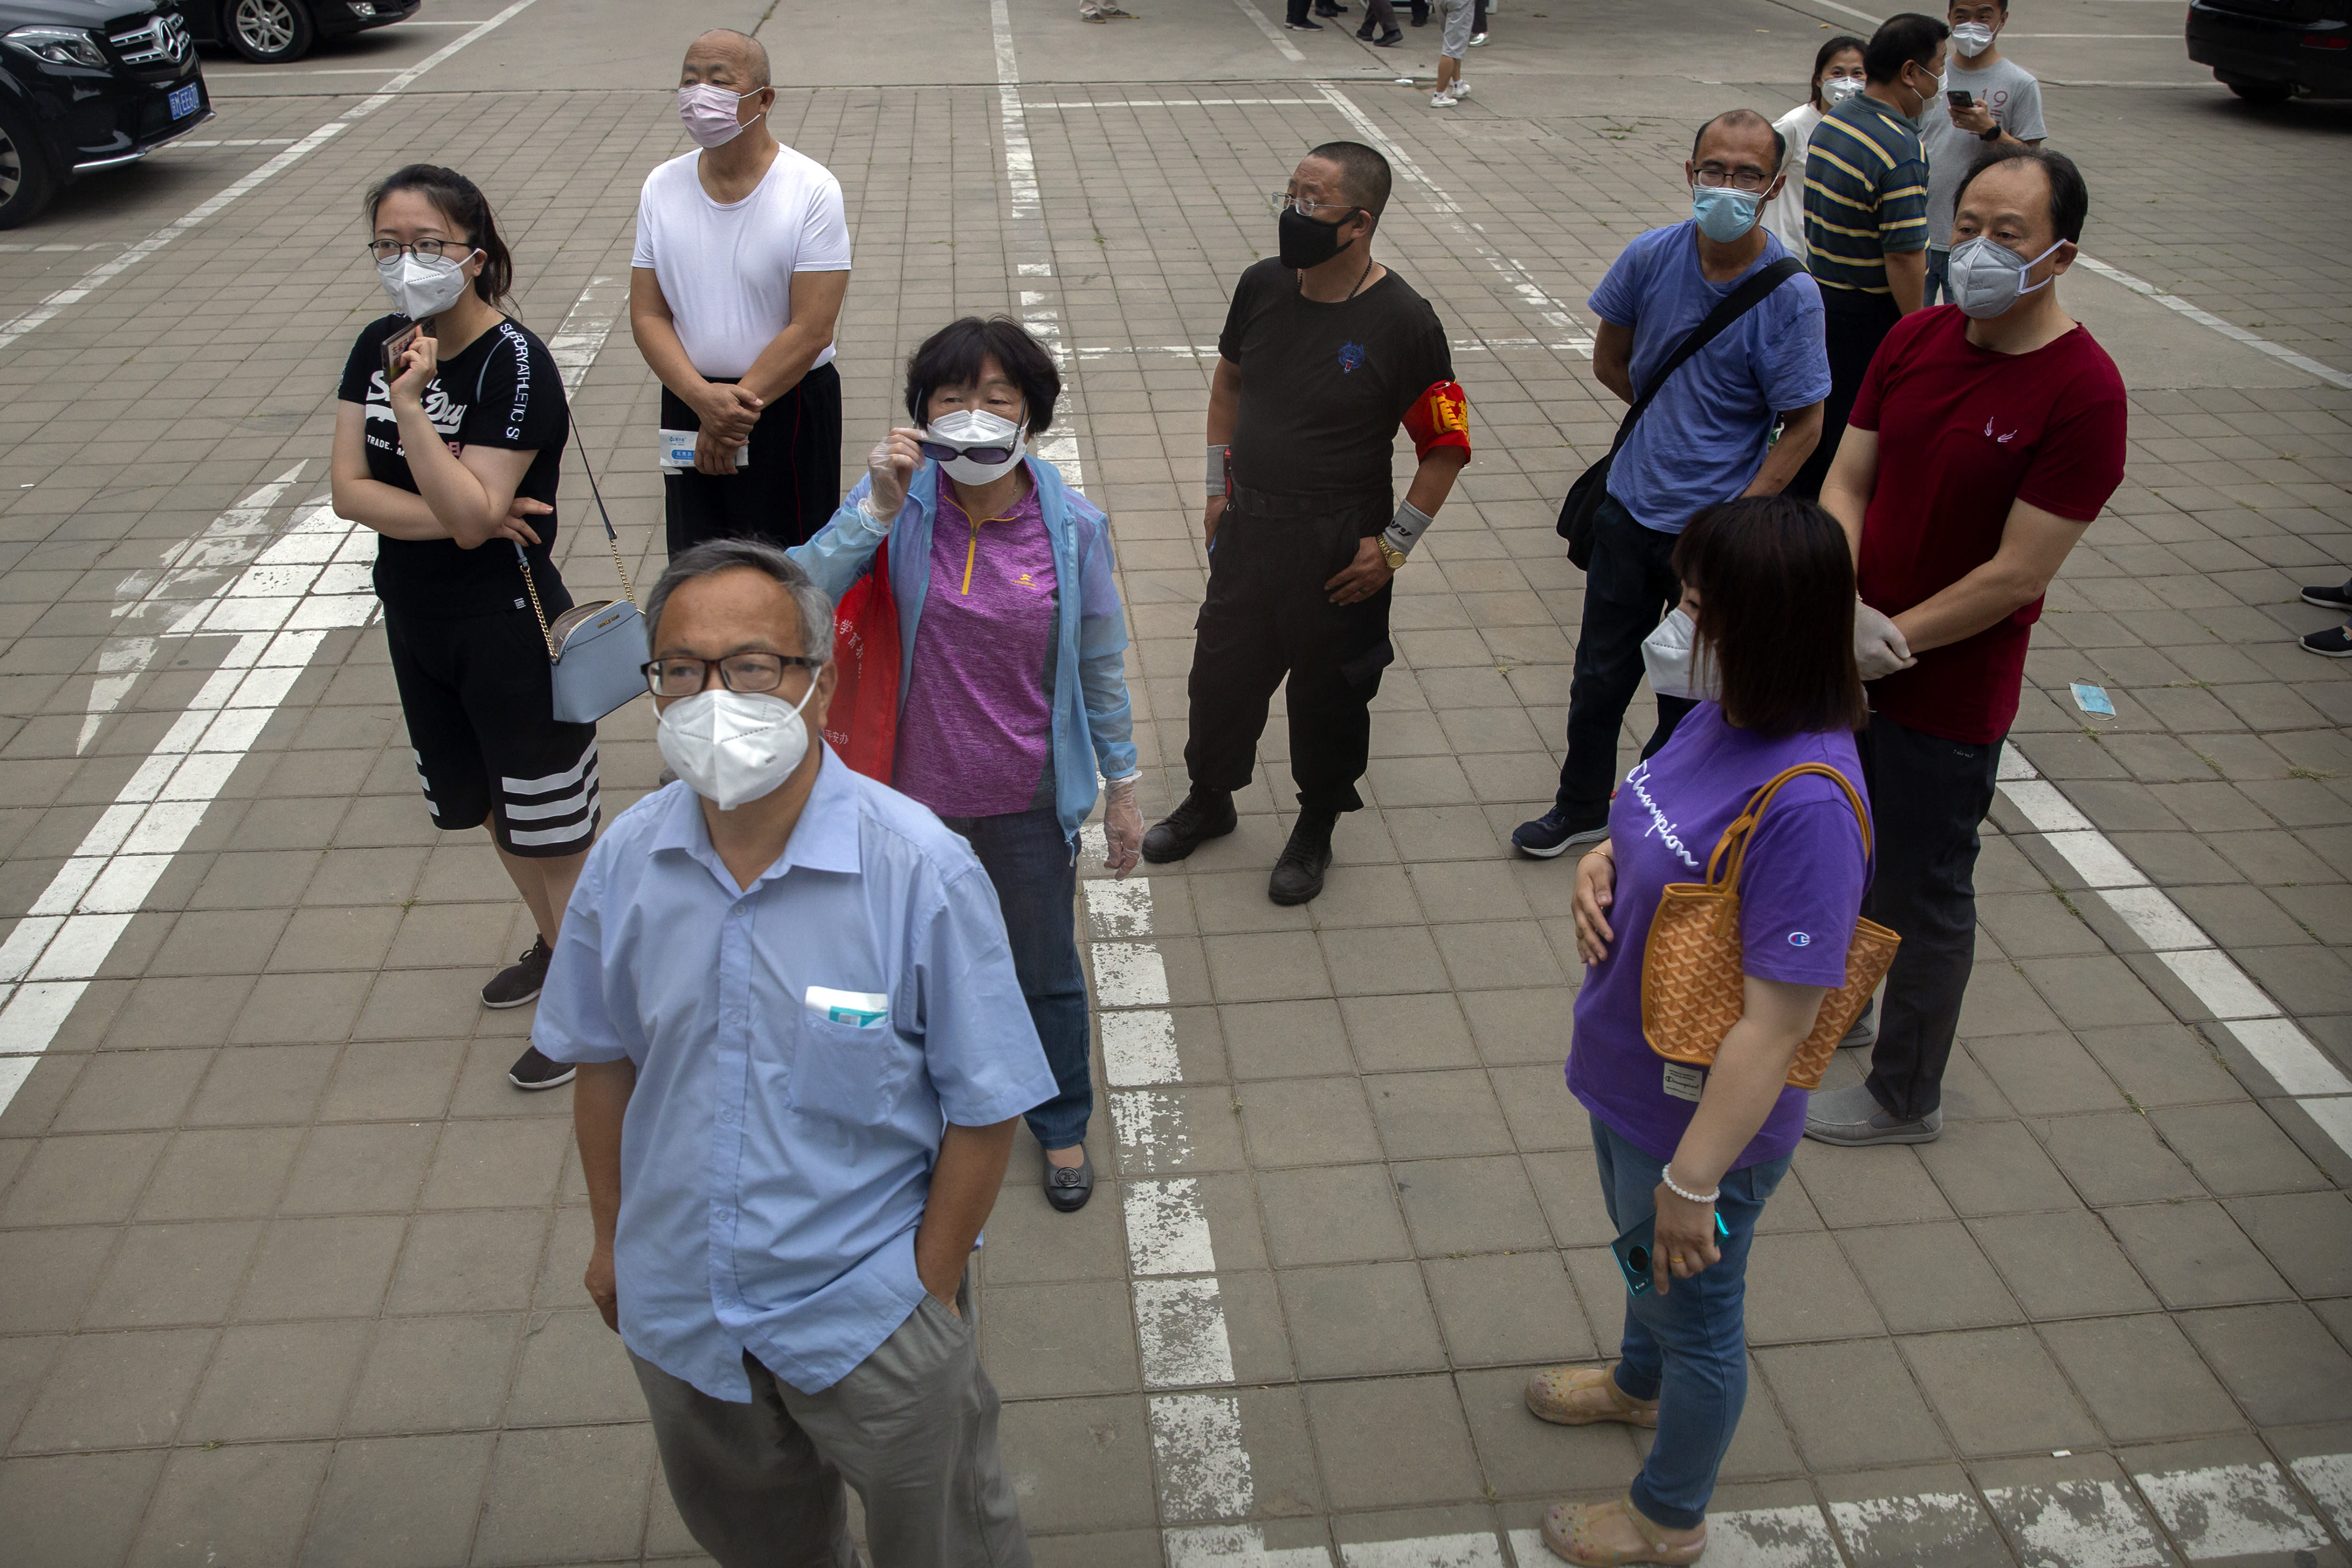 People wearing face masks watch as a bus of tested patients leaves a COVID-19 testing site for those who were potentially exposed to the coronavirus outbreak at a wholesale food market in Beijing, Wednesday, June 17, 2020. As the number of cases of COVID-19 in Beijing climbed in recent days following an outbreak linked to a wholesale food market, officials announced they had identified hundreds of thousands of people who needed to be tested for the coronavirus. (AP Photo/Mark Schiefelbein)